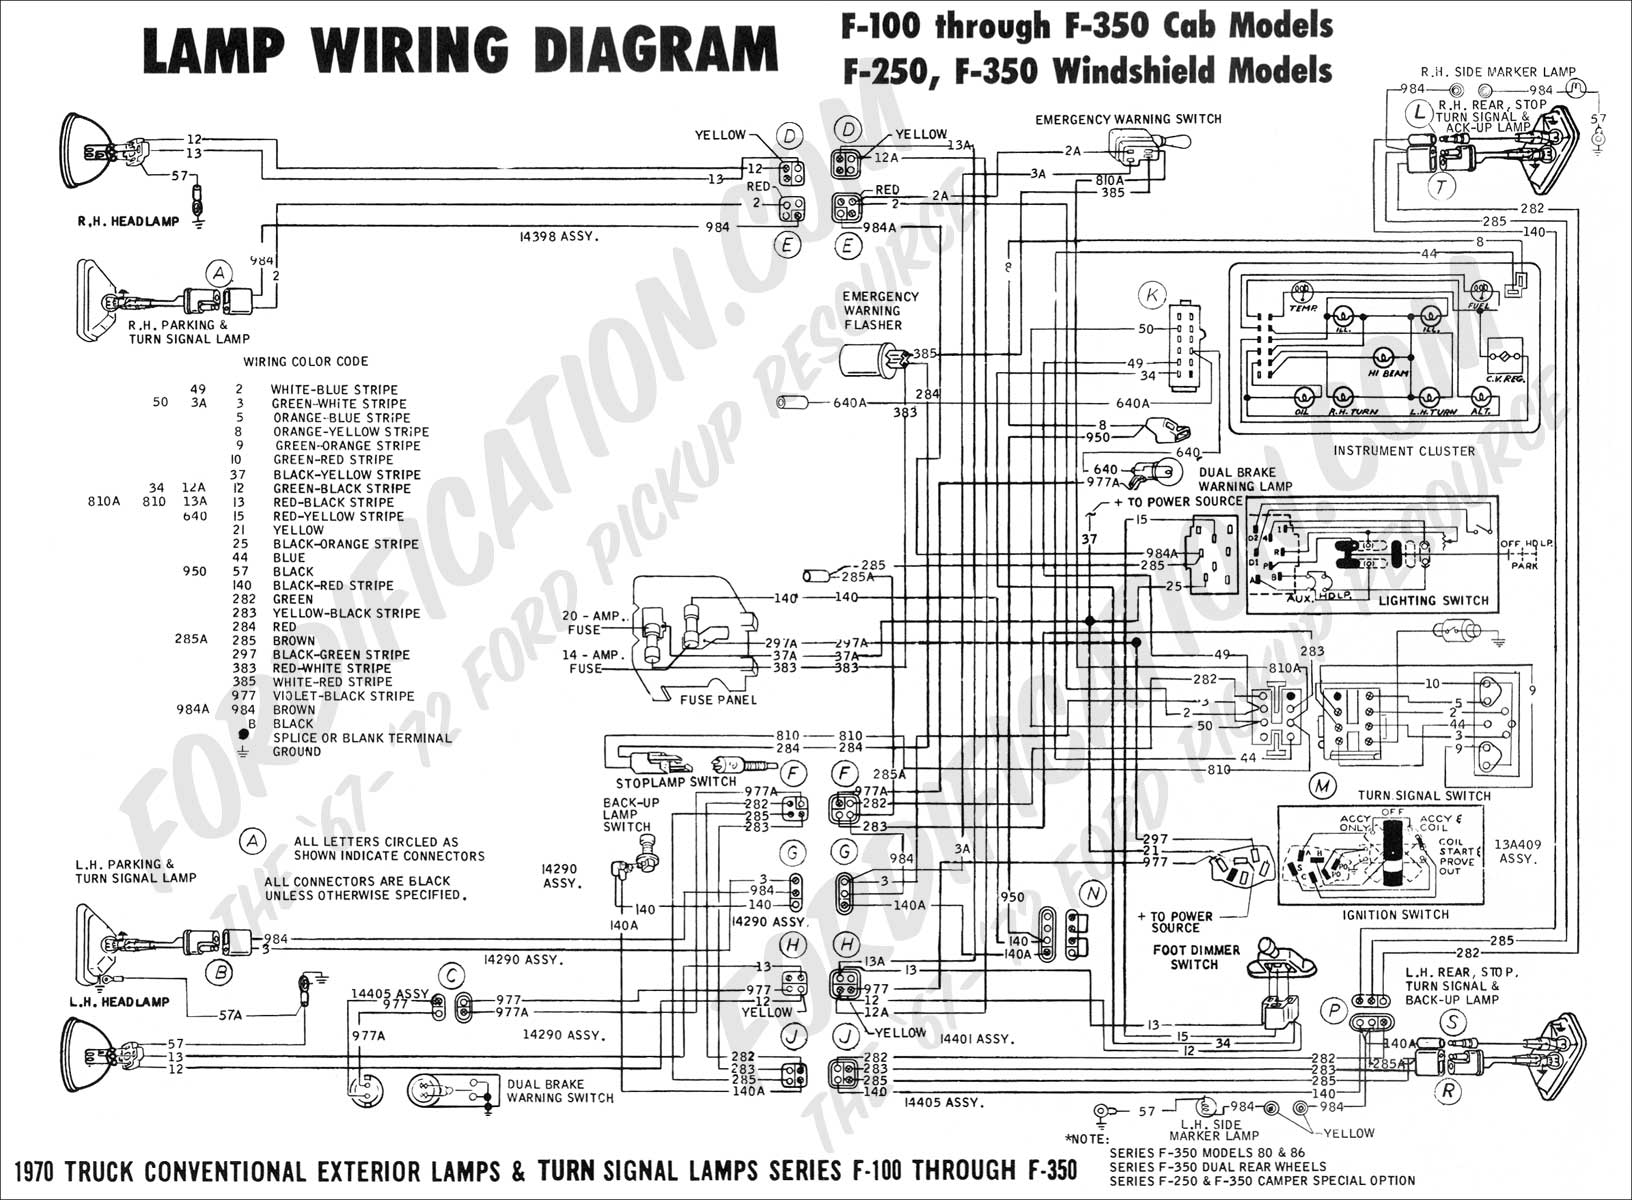 966863 1991 Ford F350 Wiring Schematic on typical trailer wiring diagram